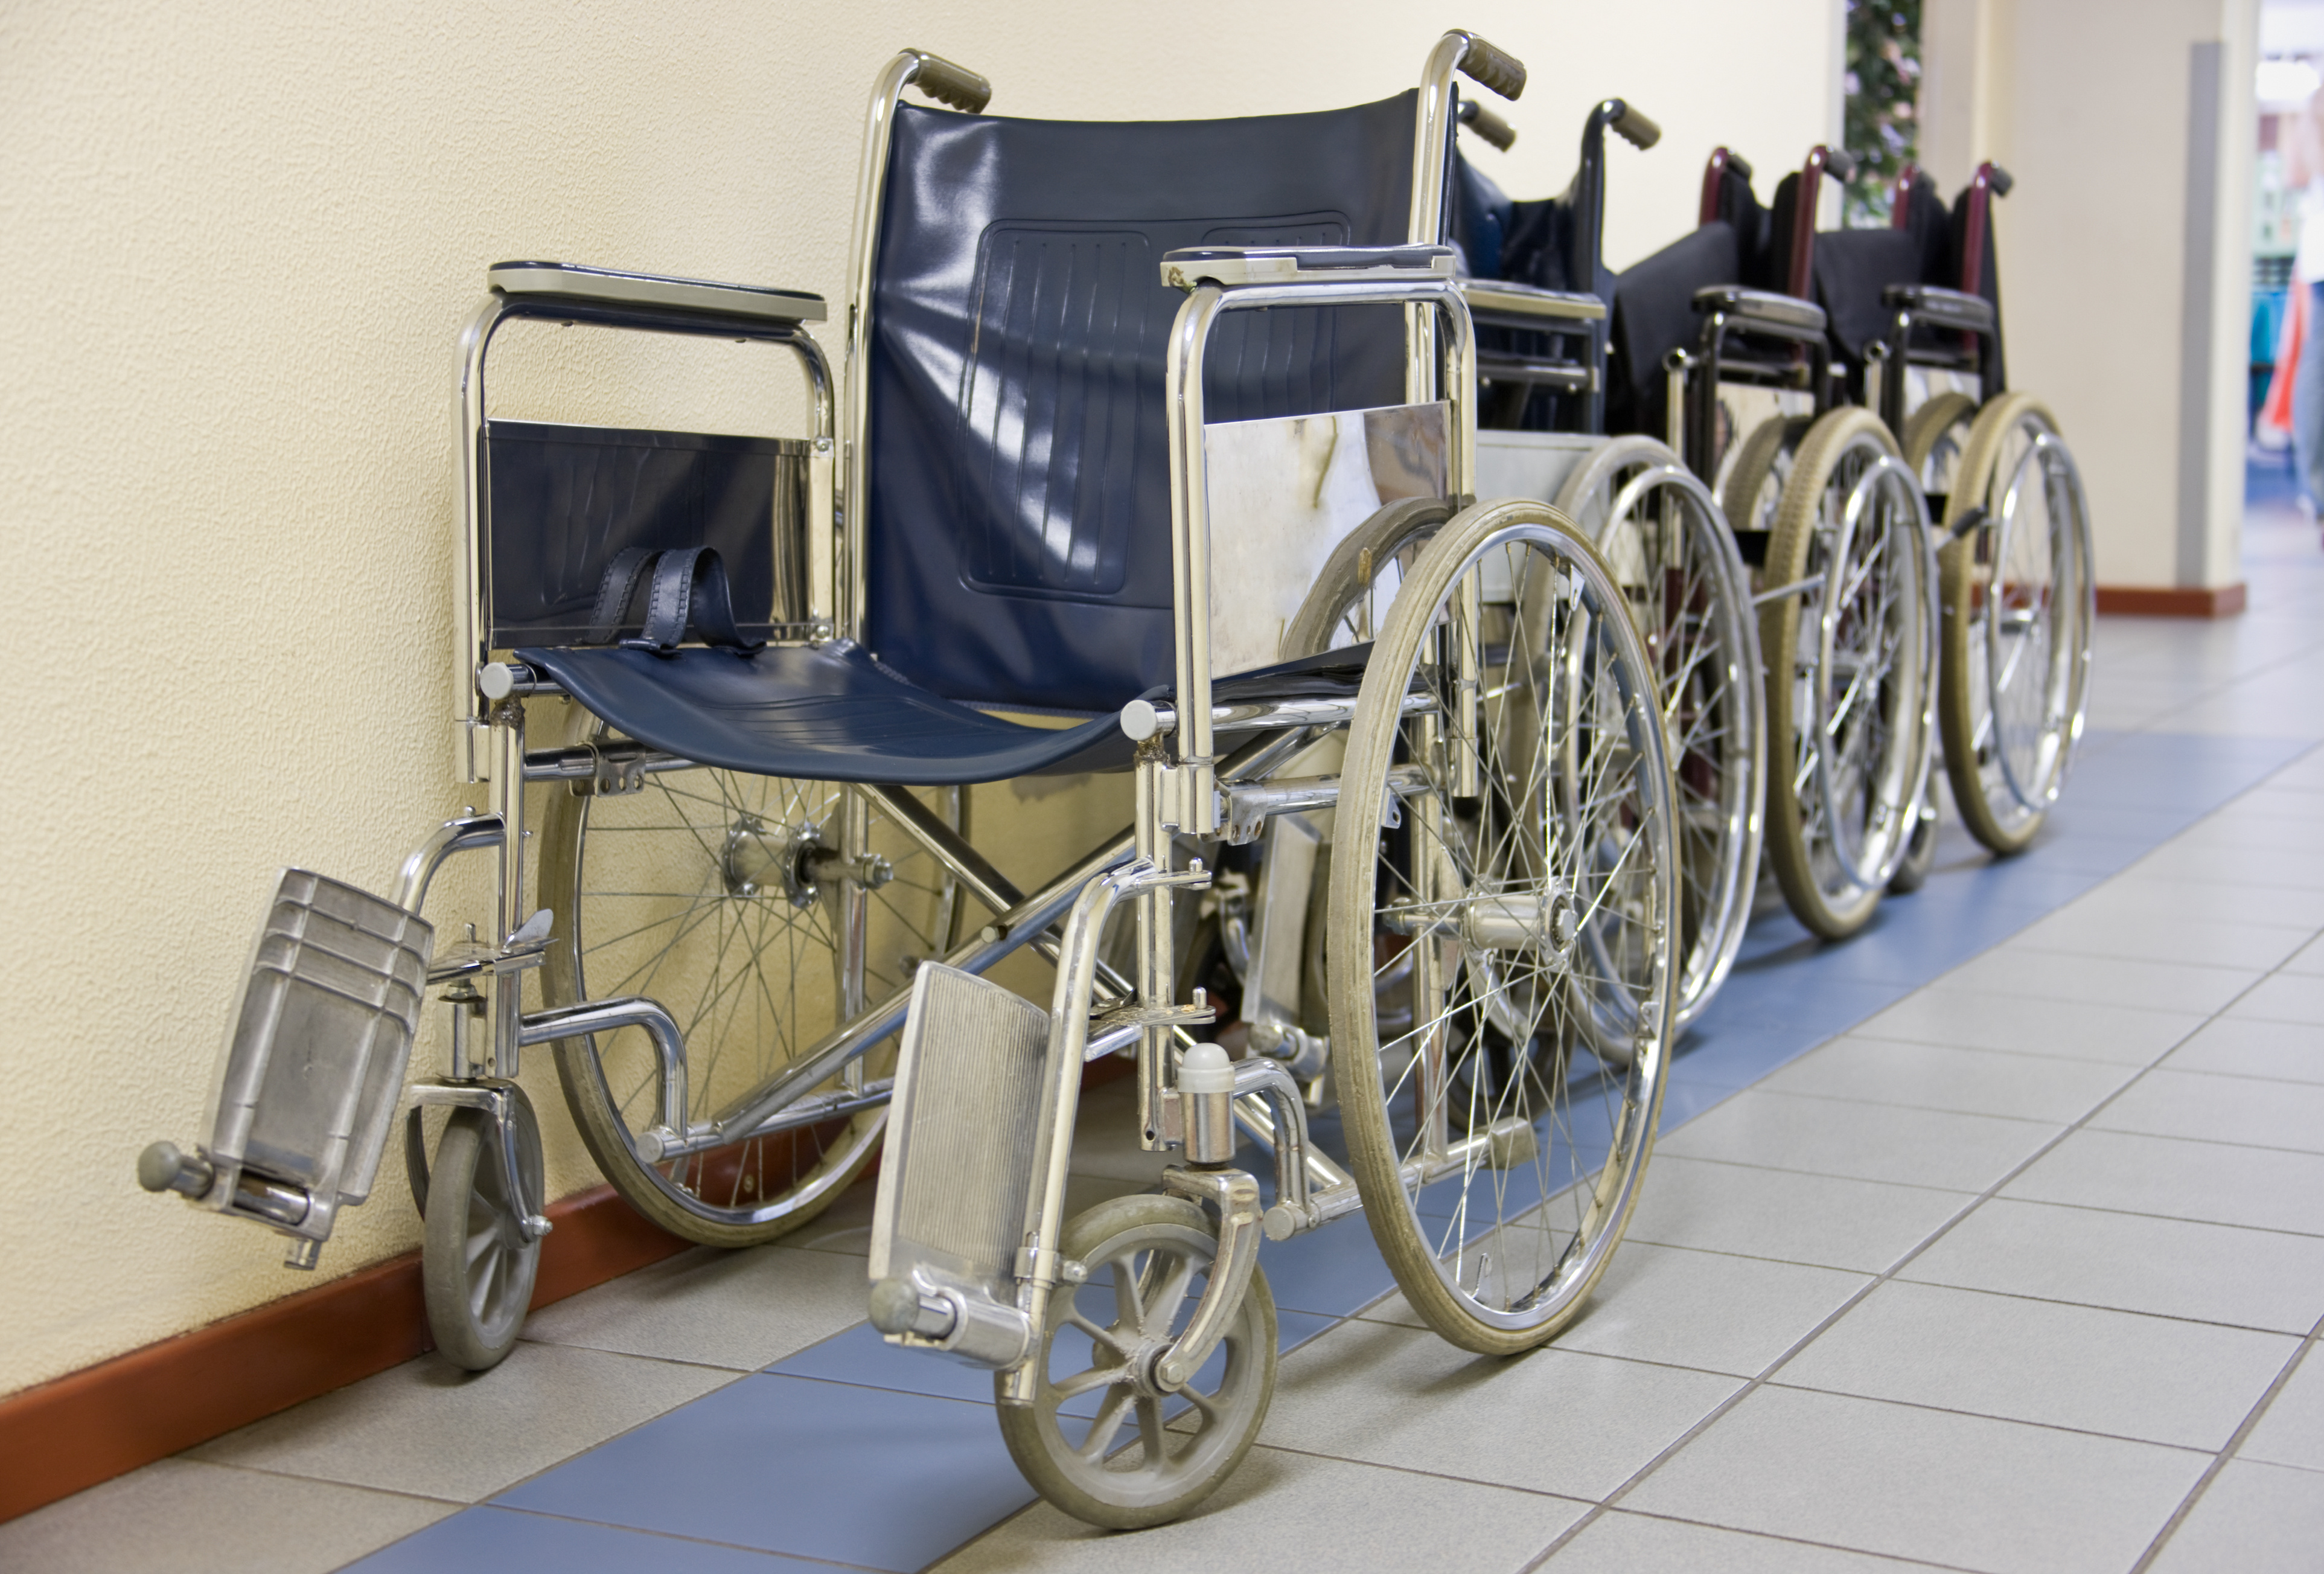 row of wheelchairs in a hospital hallway